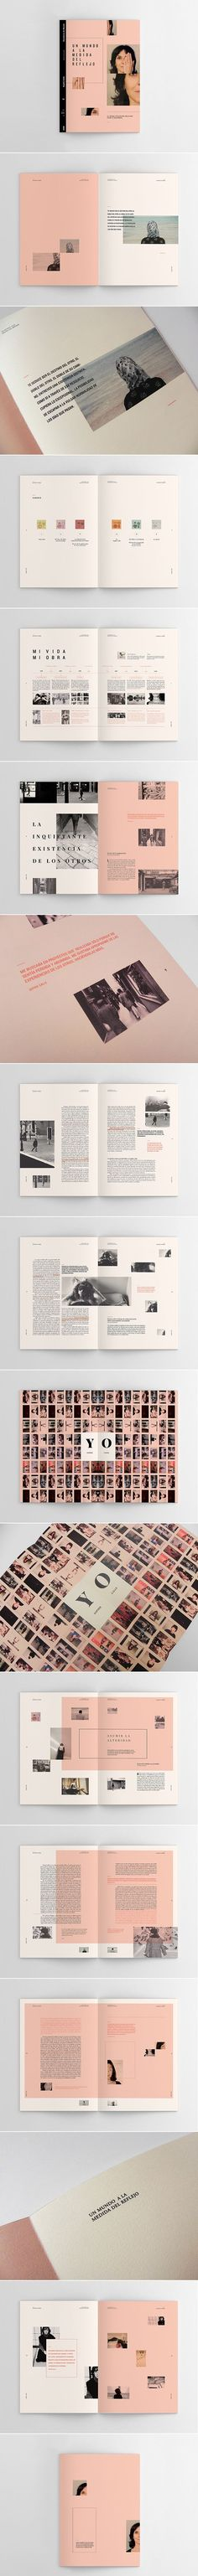 Sophie Calle | Hacedores de Mundo on Behance. Presentation provides different…